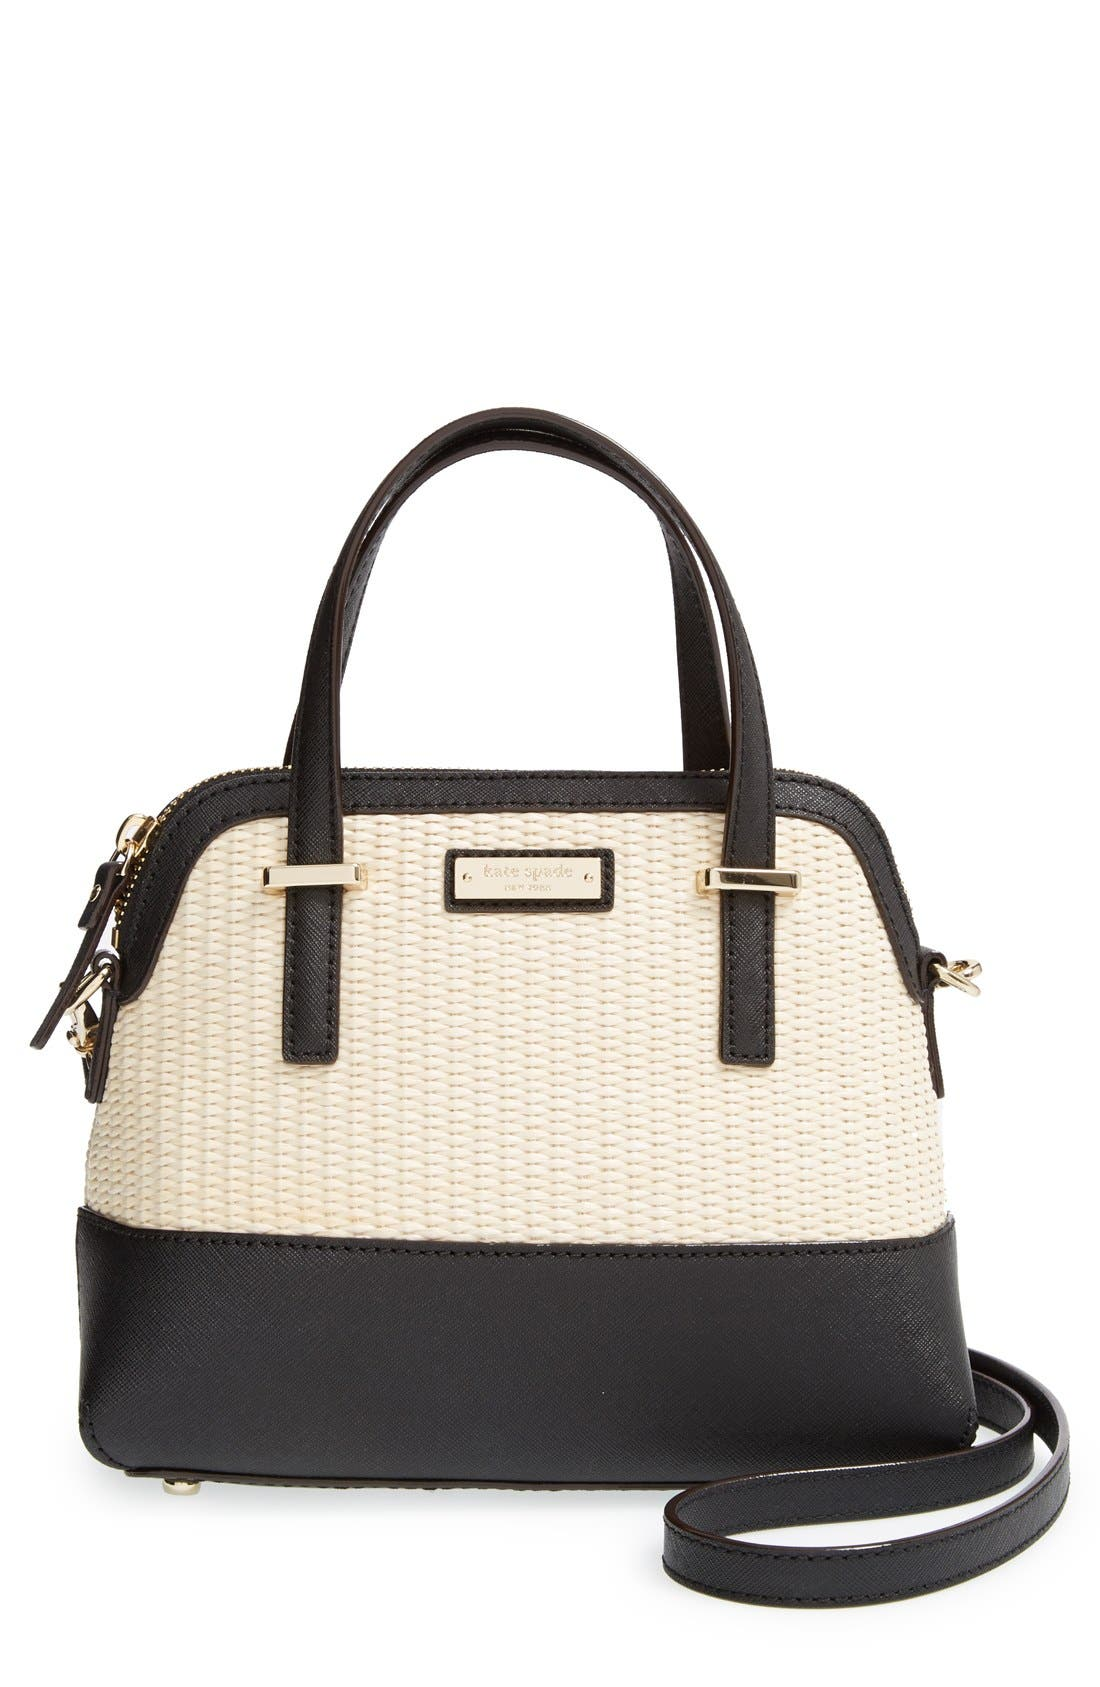 Main Image - kate spade new york 'cedar street straw - small maise' satchel